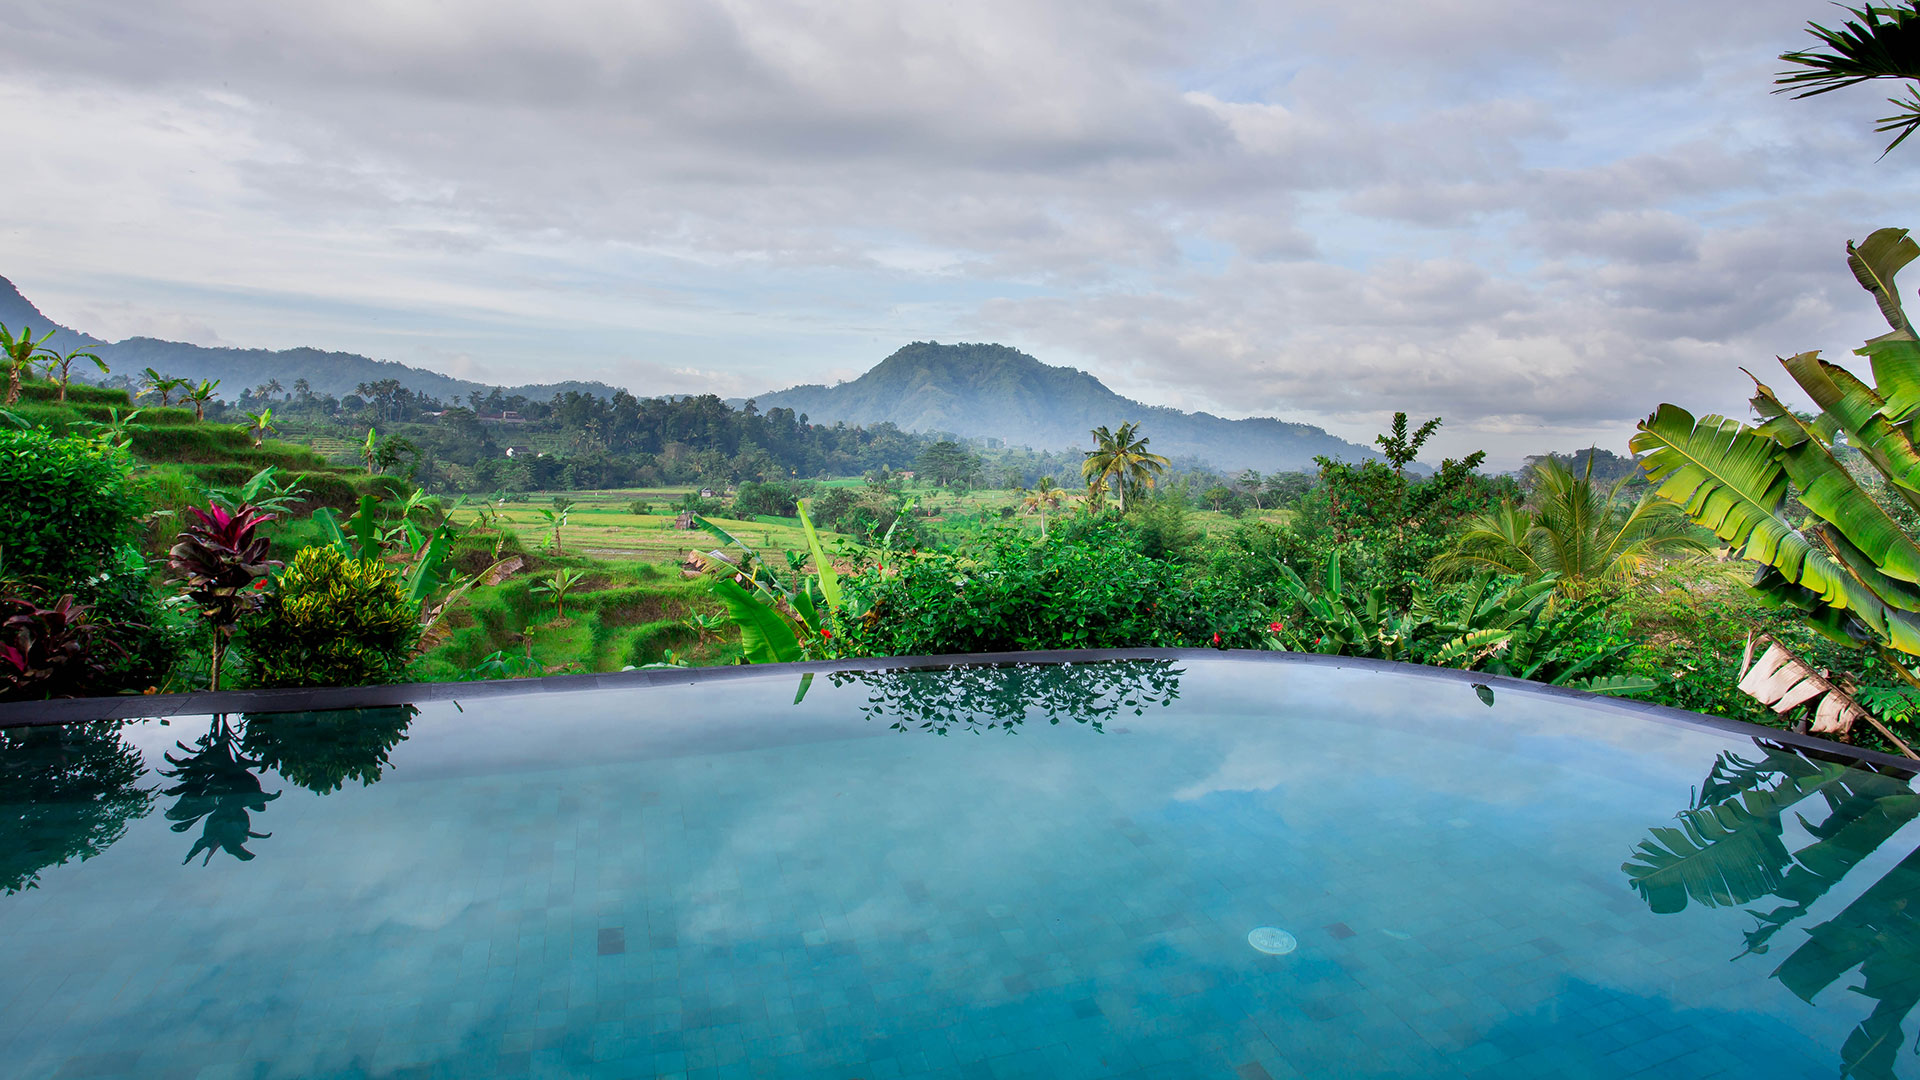 Amazing retreat away from the crowd of city hustle bustle located in Sidemen Village, Karangasem, Bali...